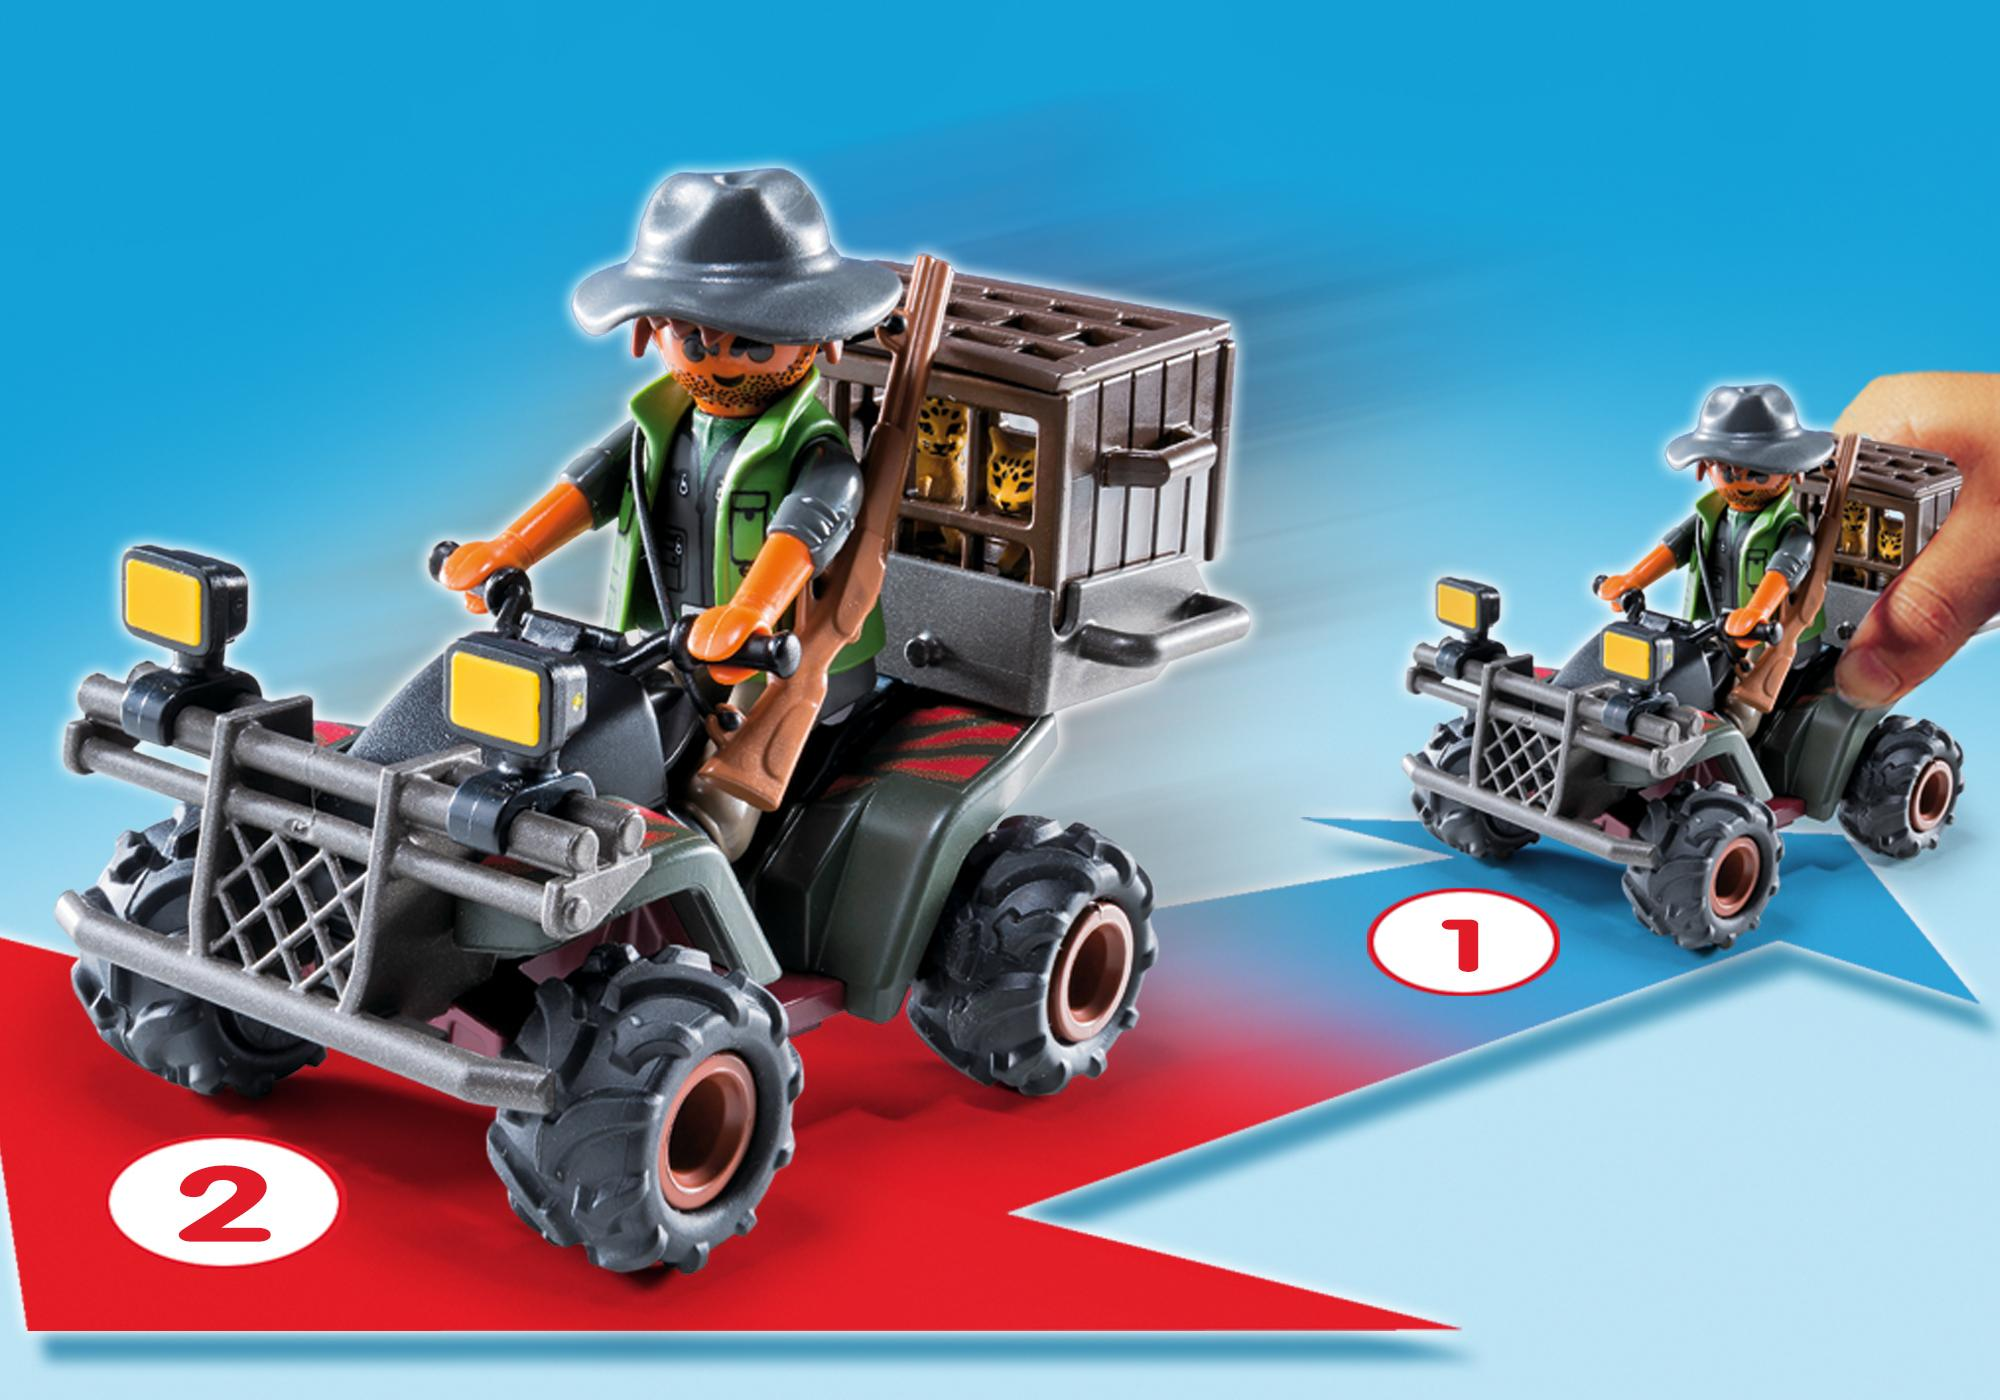 http://media.playmobil.com/i/playmobil/6939_product_extra1/Wilderer mit Quad